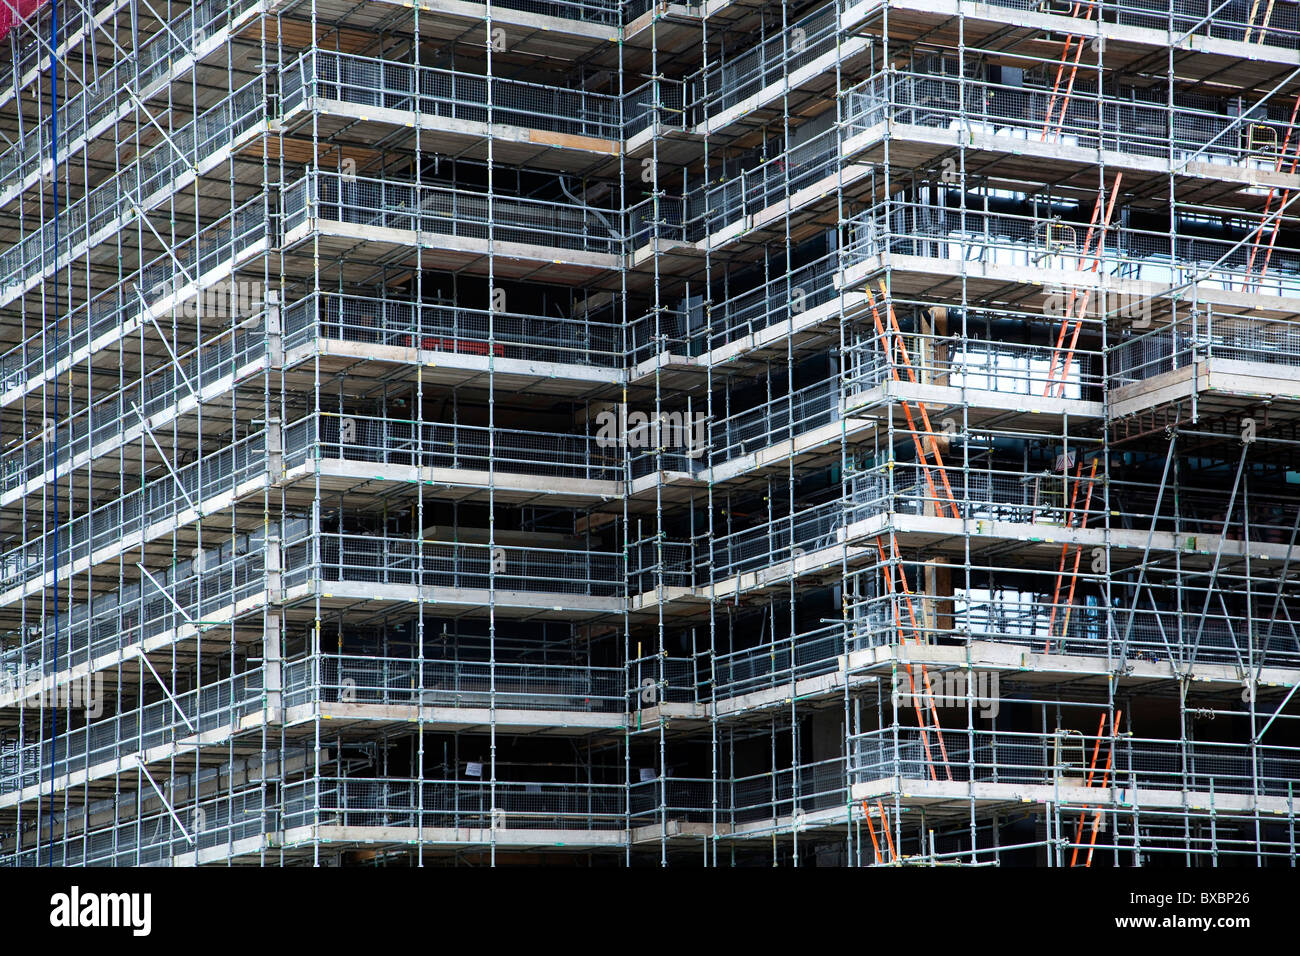 Construction site, house with scaffolding in London, England, United Kingdom, Europe - Stock Image